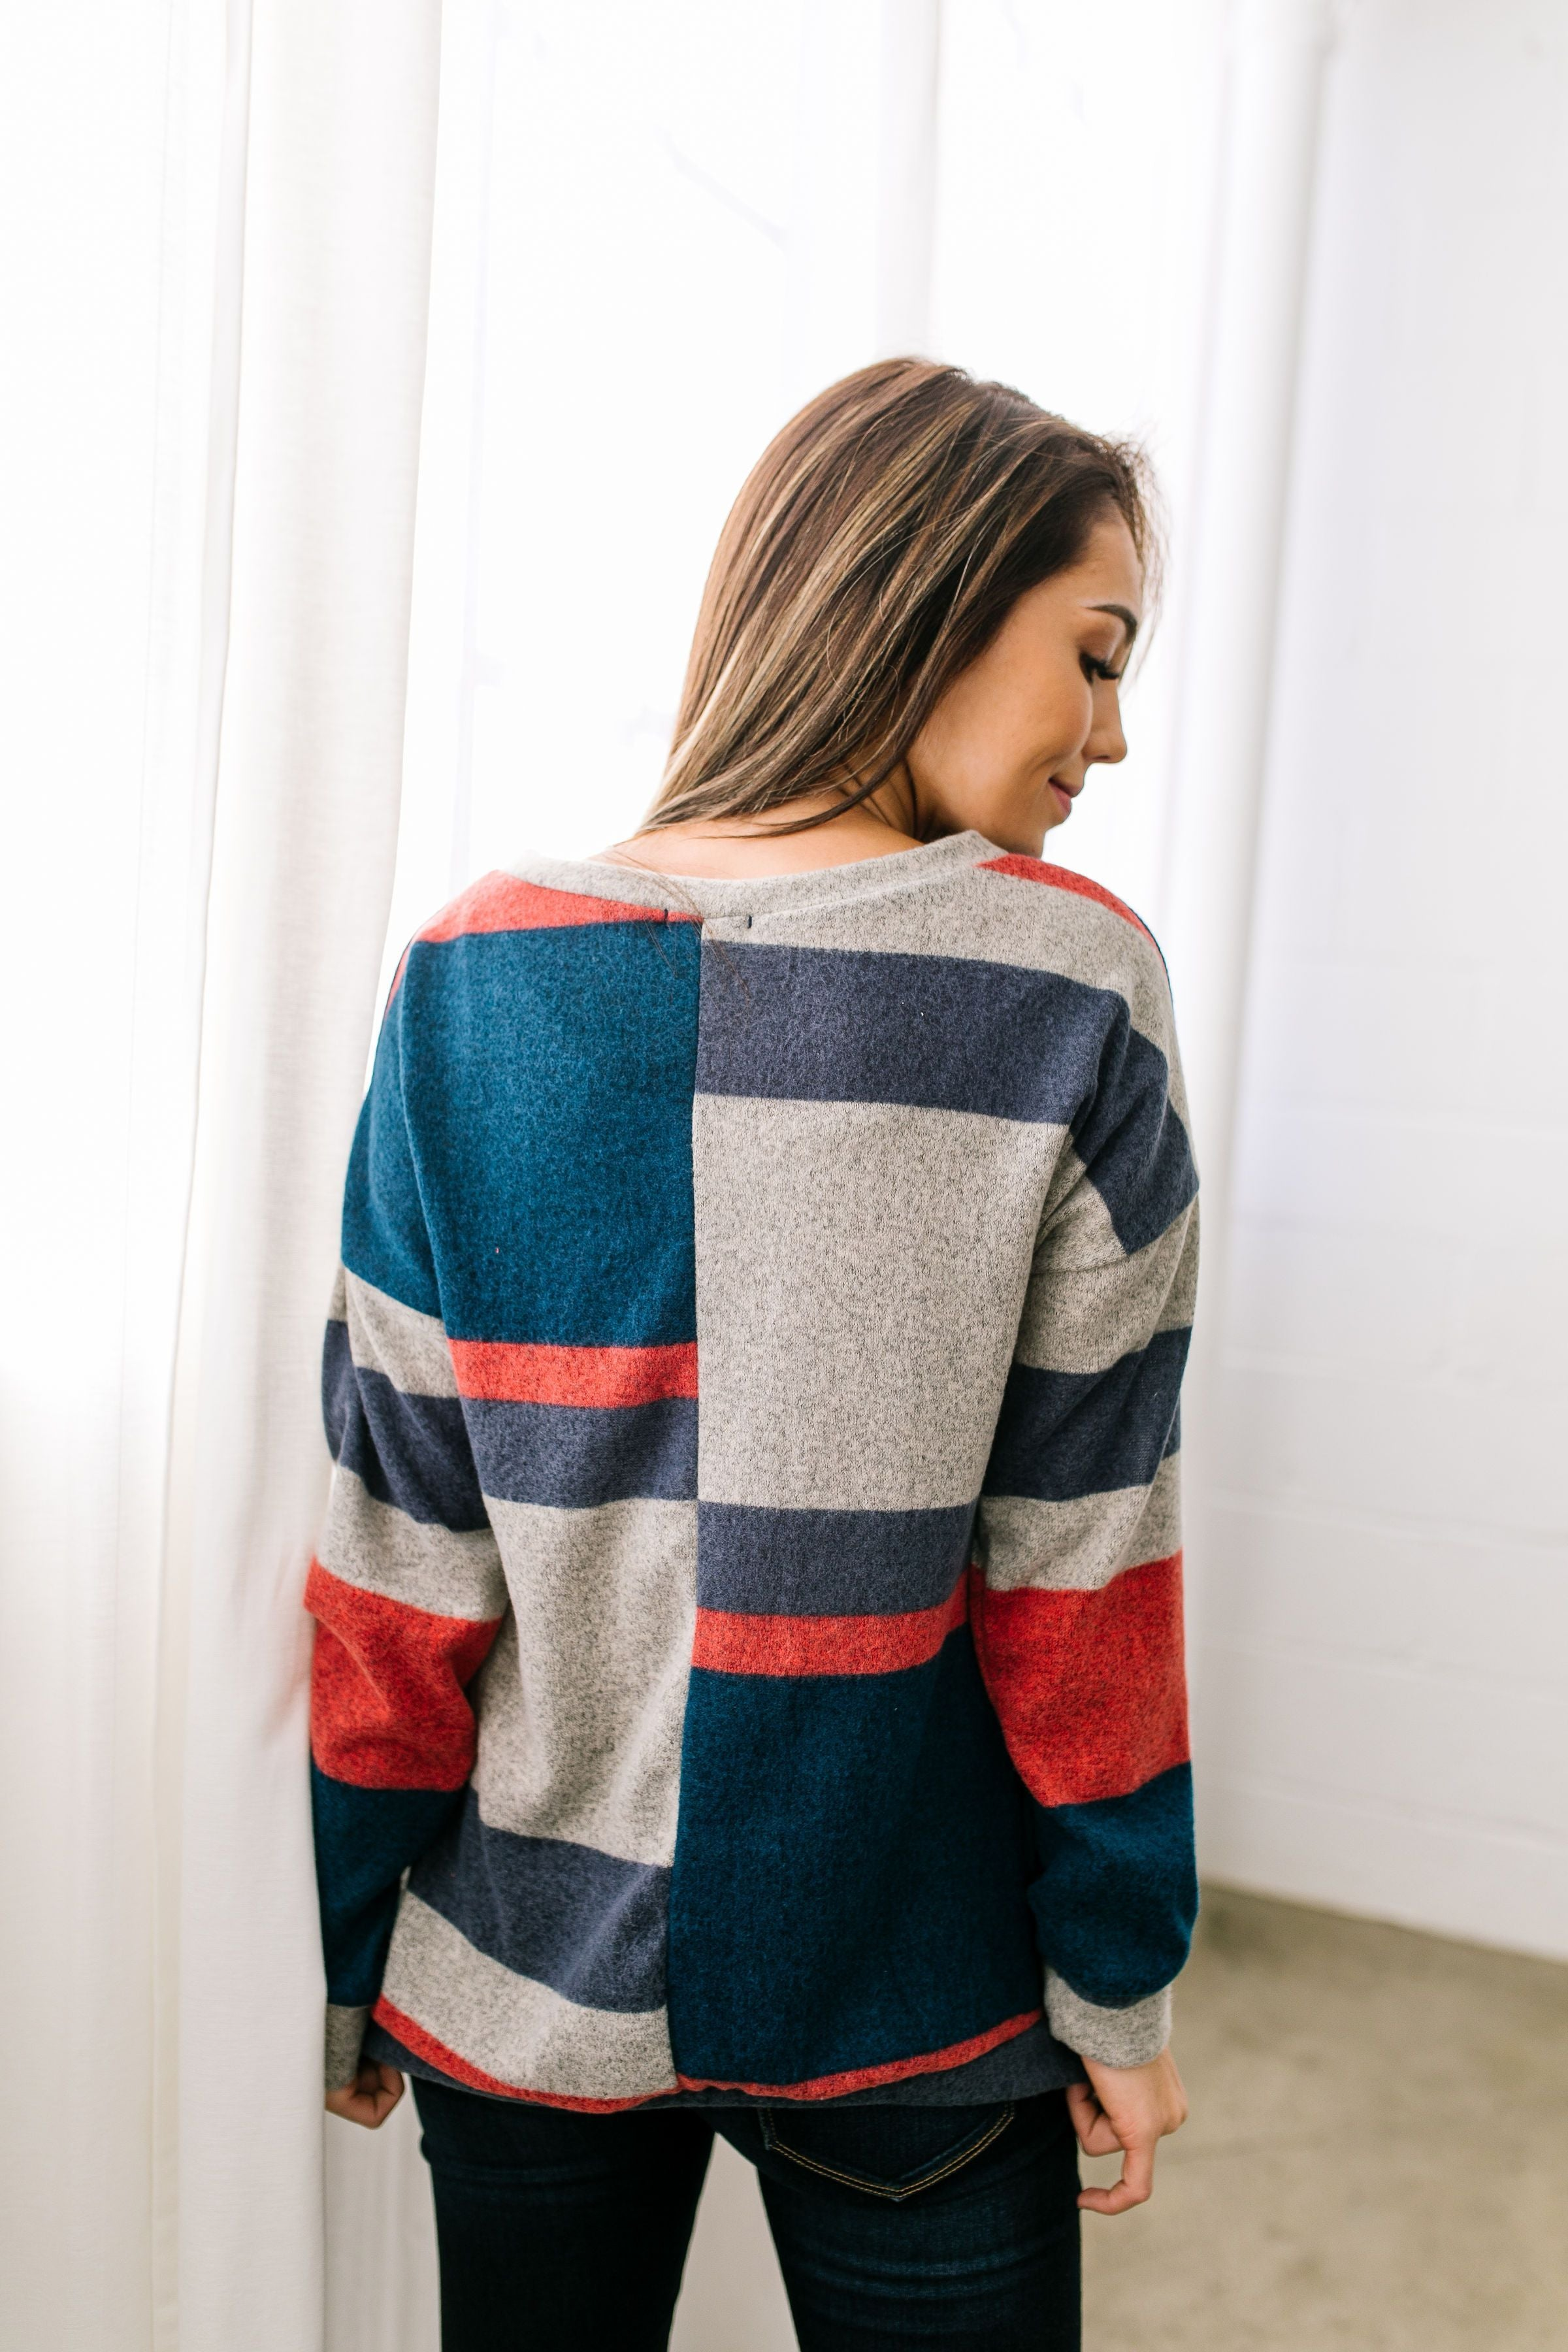 Keeping It Real Multi-Color Striped Top - ALL SALES FINAL